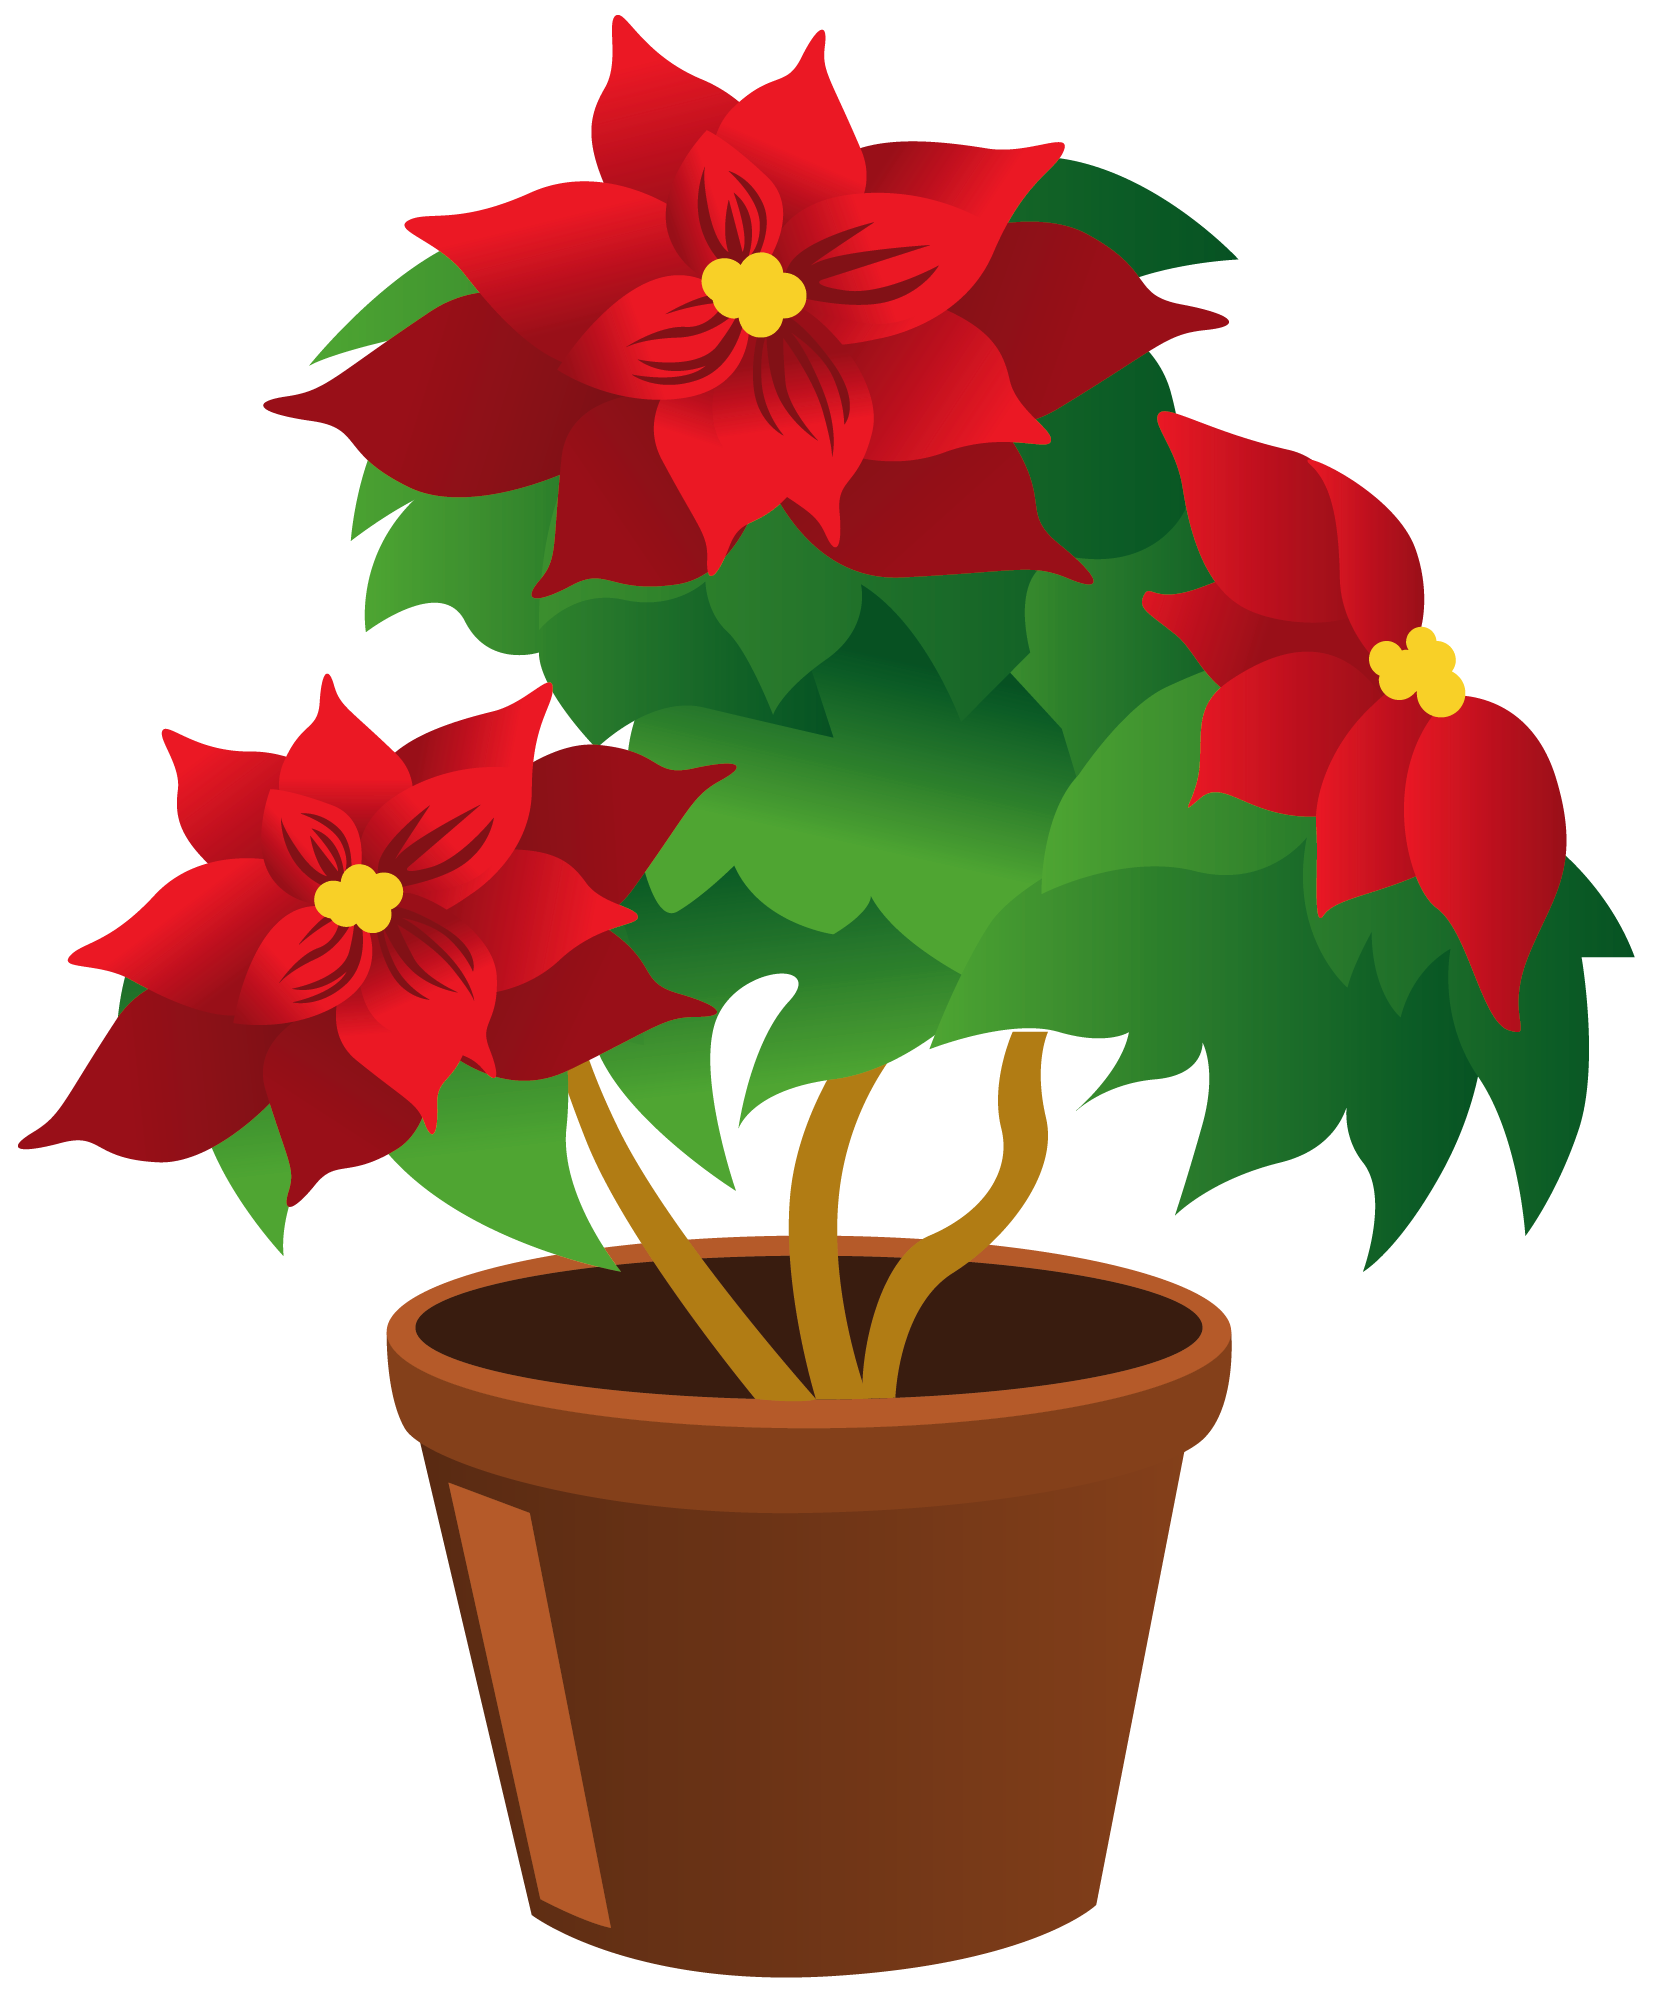 Poinsettia clipart cartoon Clip Potted kid plant Growing